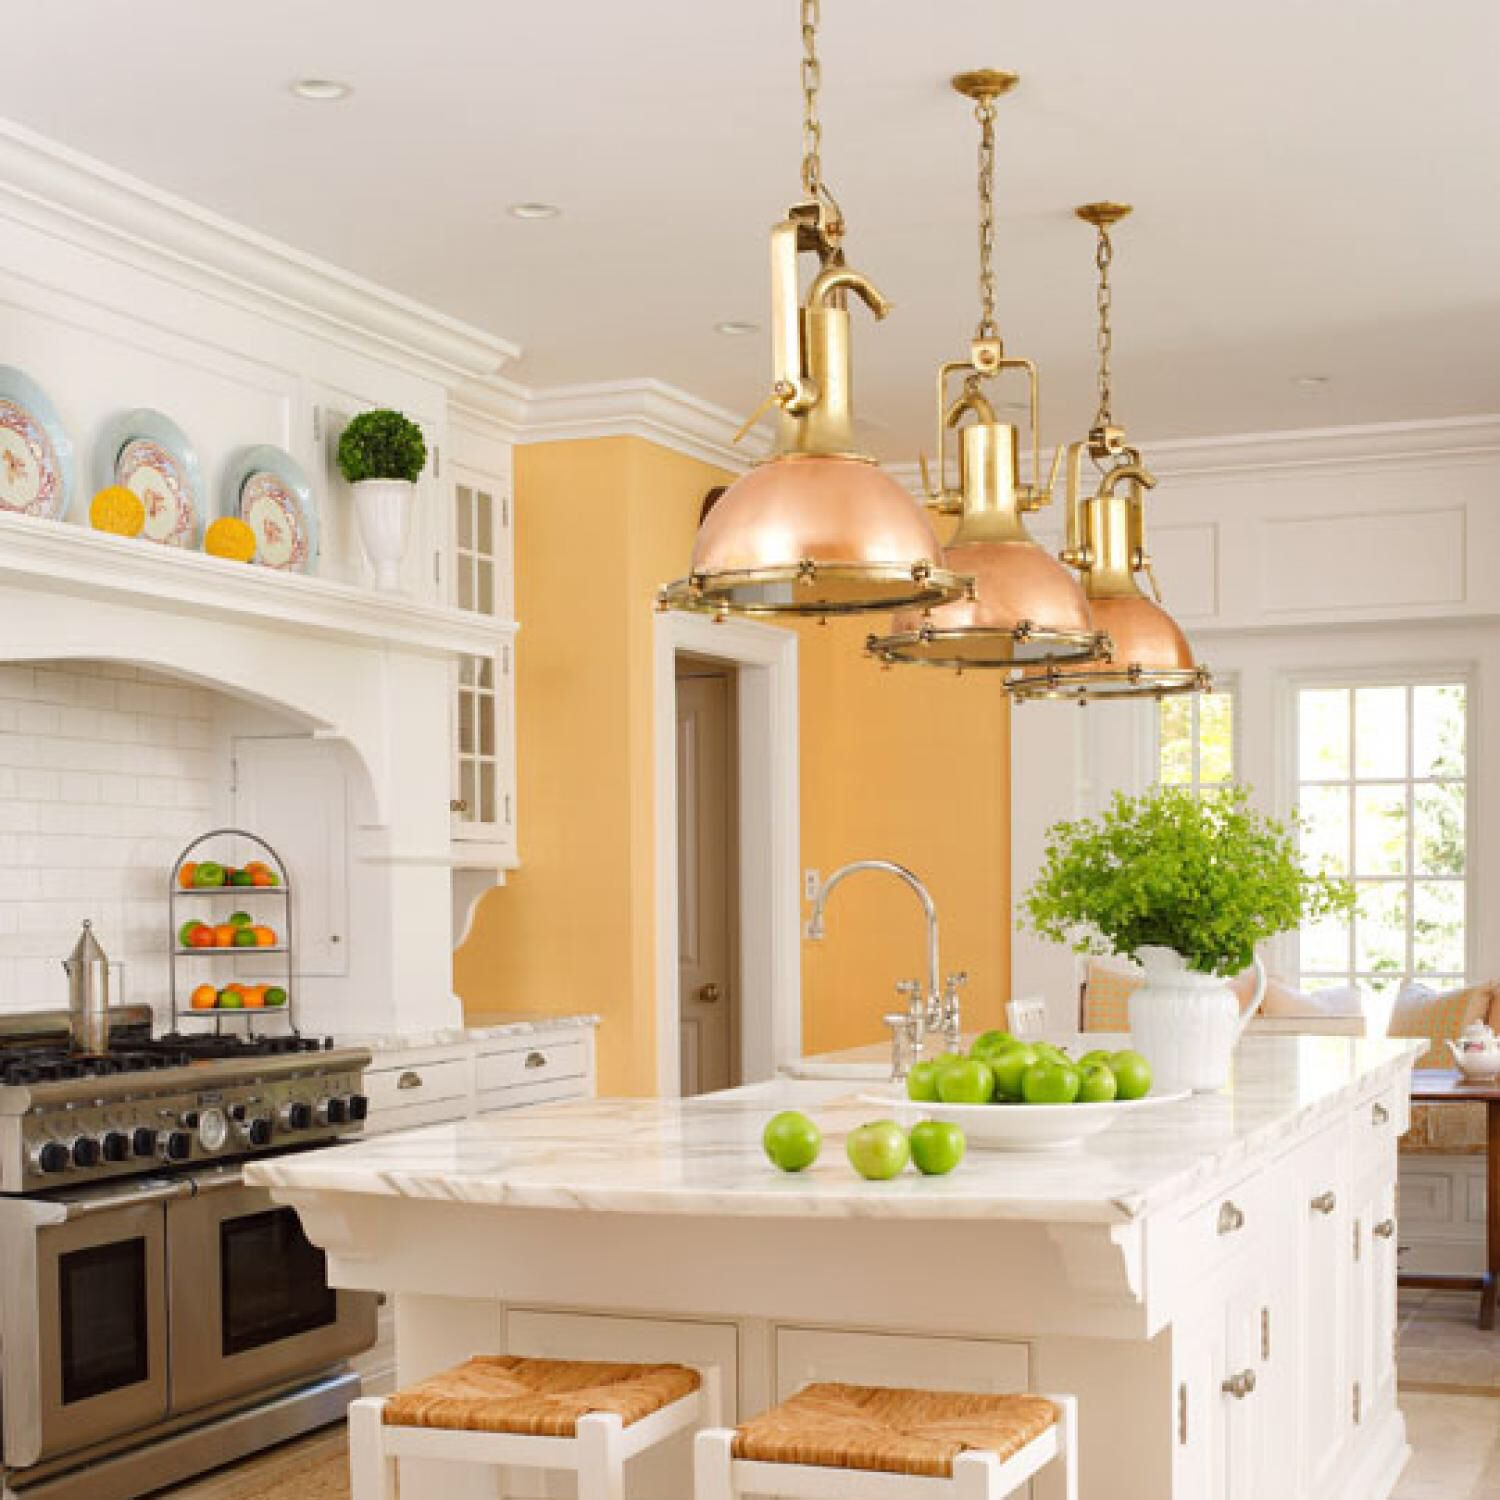 Love the wall color! | For the kitchen | Pinterest | Wall colors ...